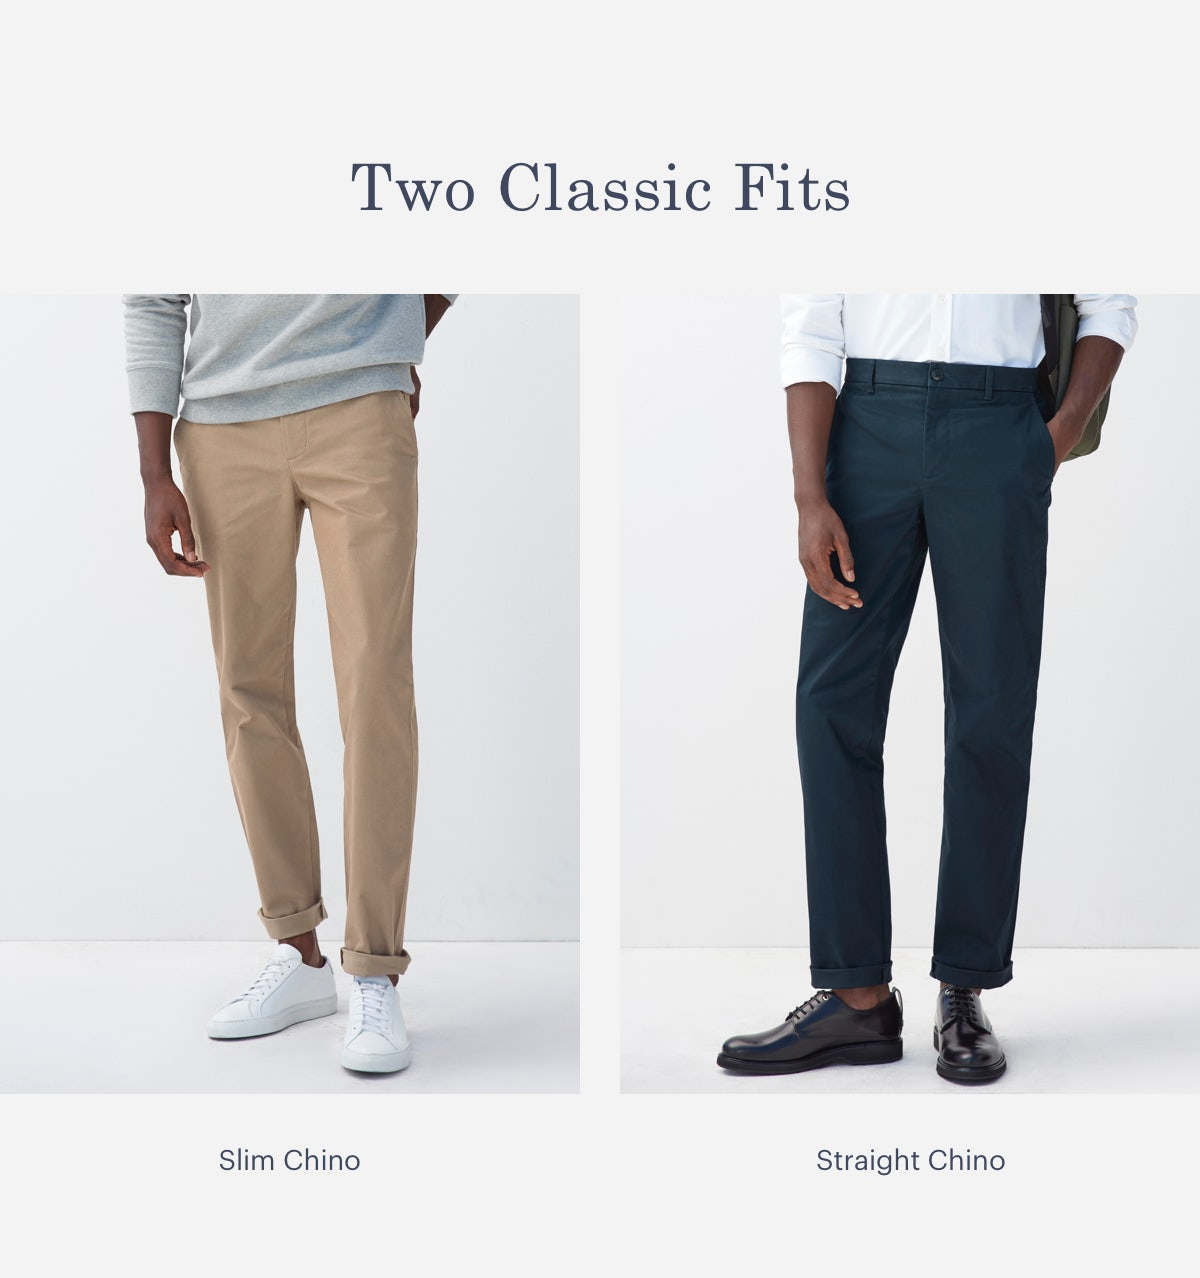 Two Classic Fits. Slim Chino, Straight Chino